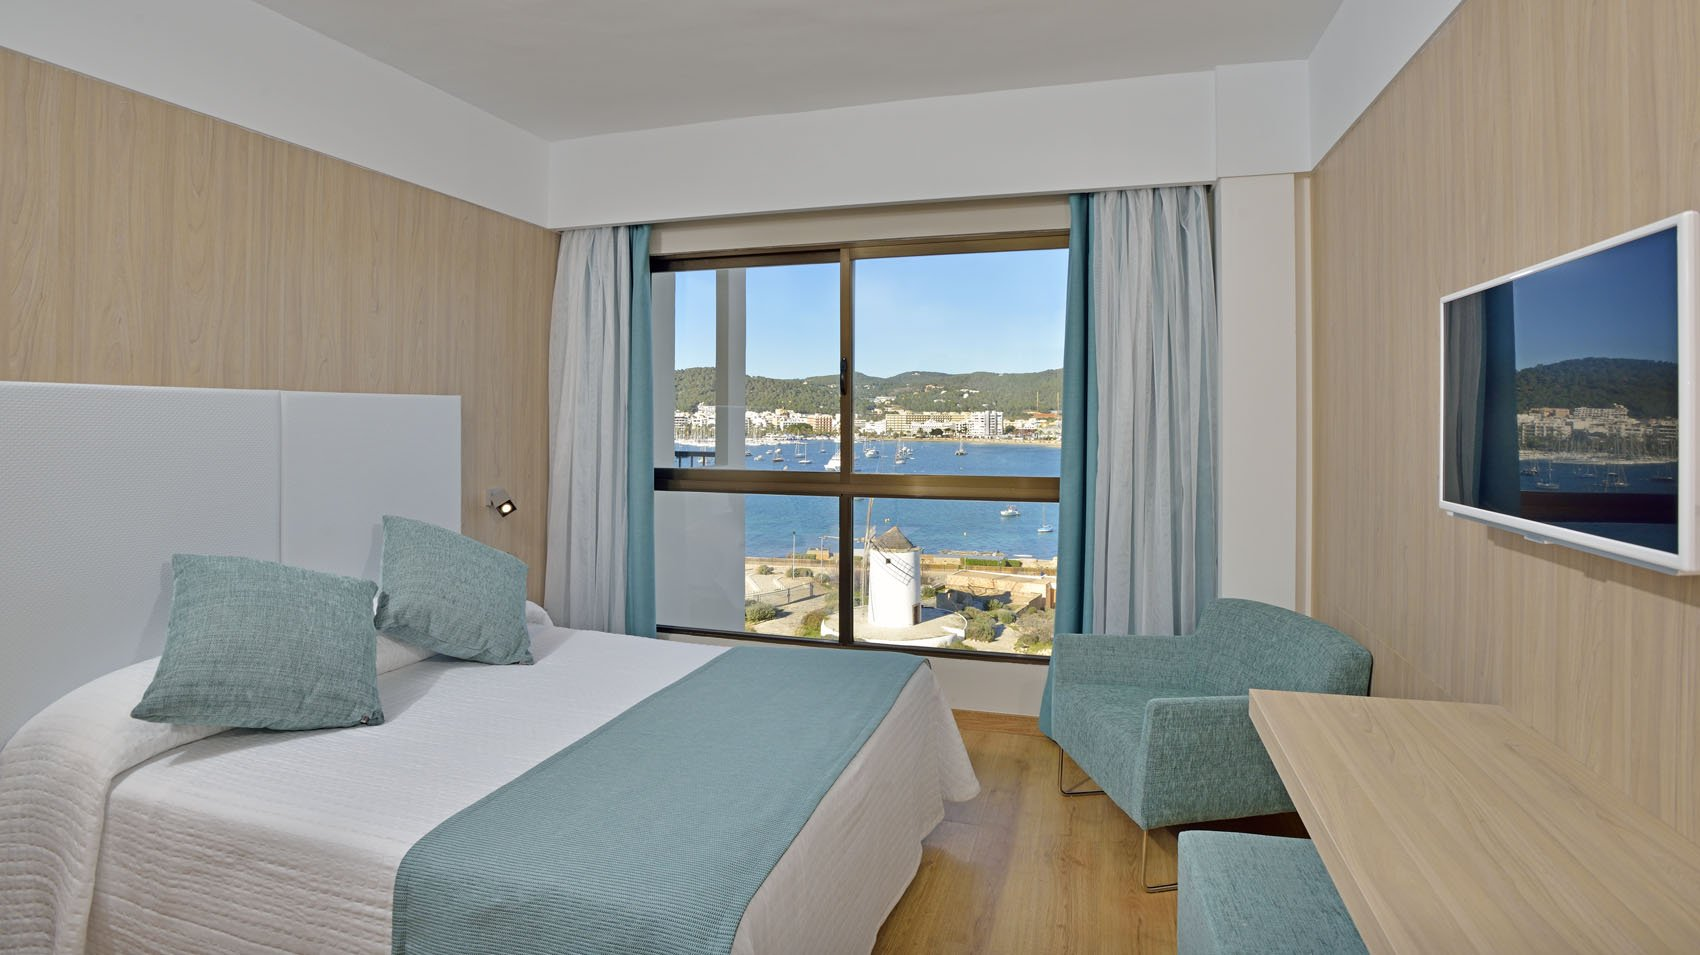 Alua Hawaii Ibiza Hotel S Single Room San Antonio